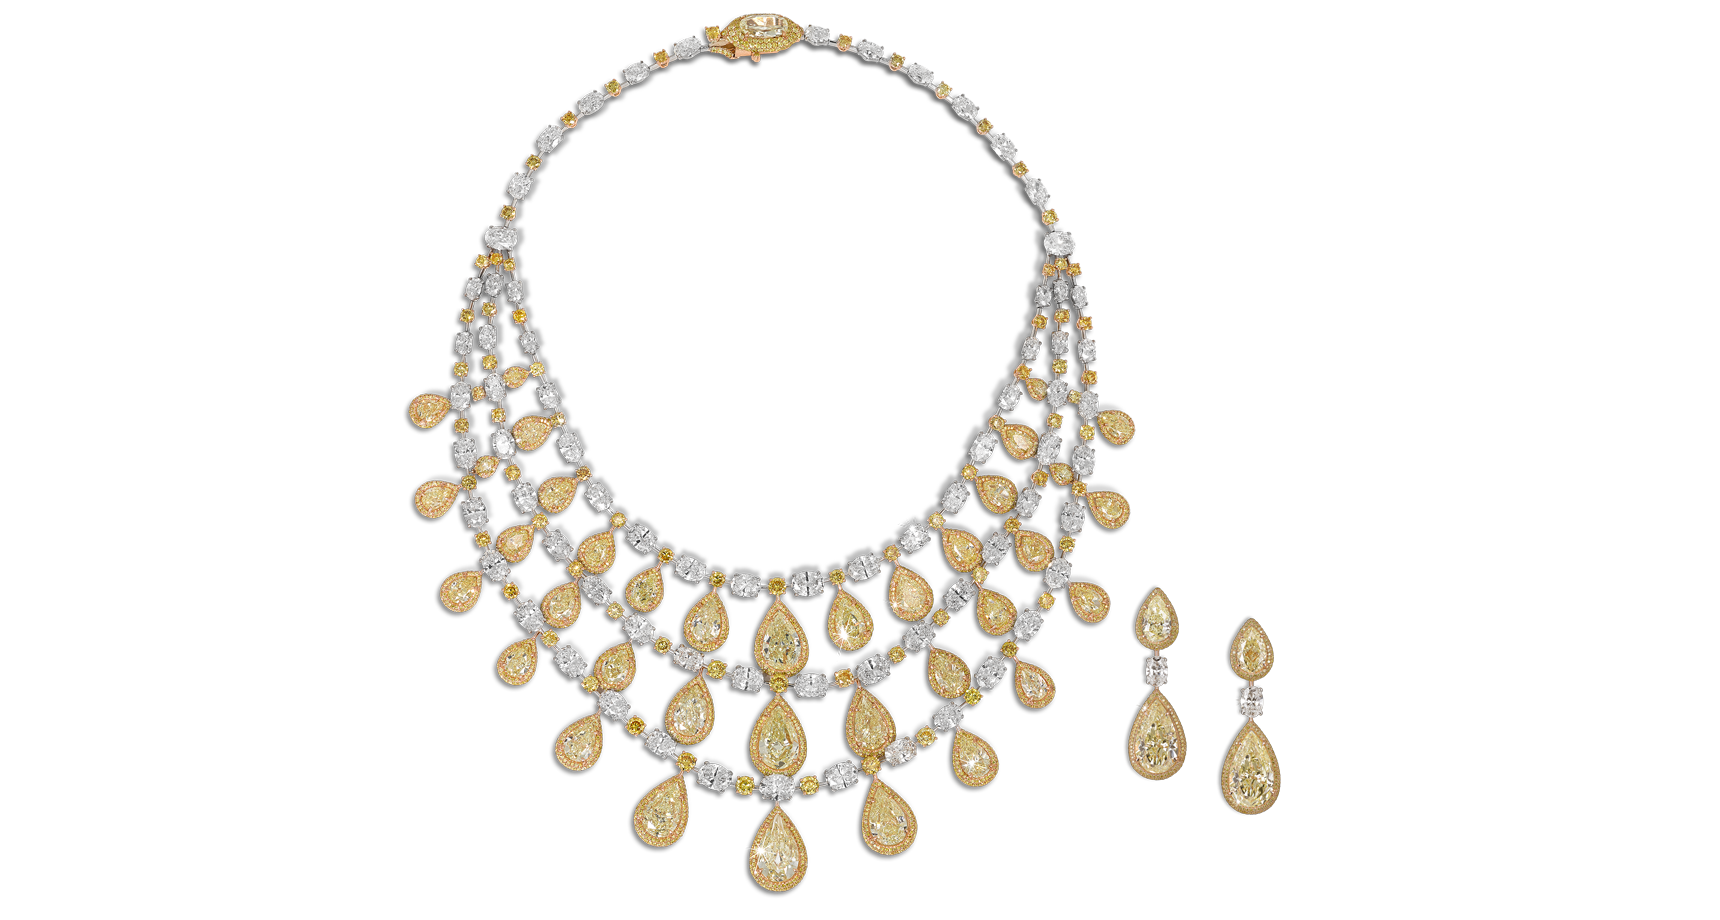 Yellow pear shape diamond necklace with white marquise and pear cut diamonds